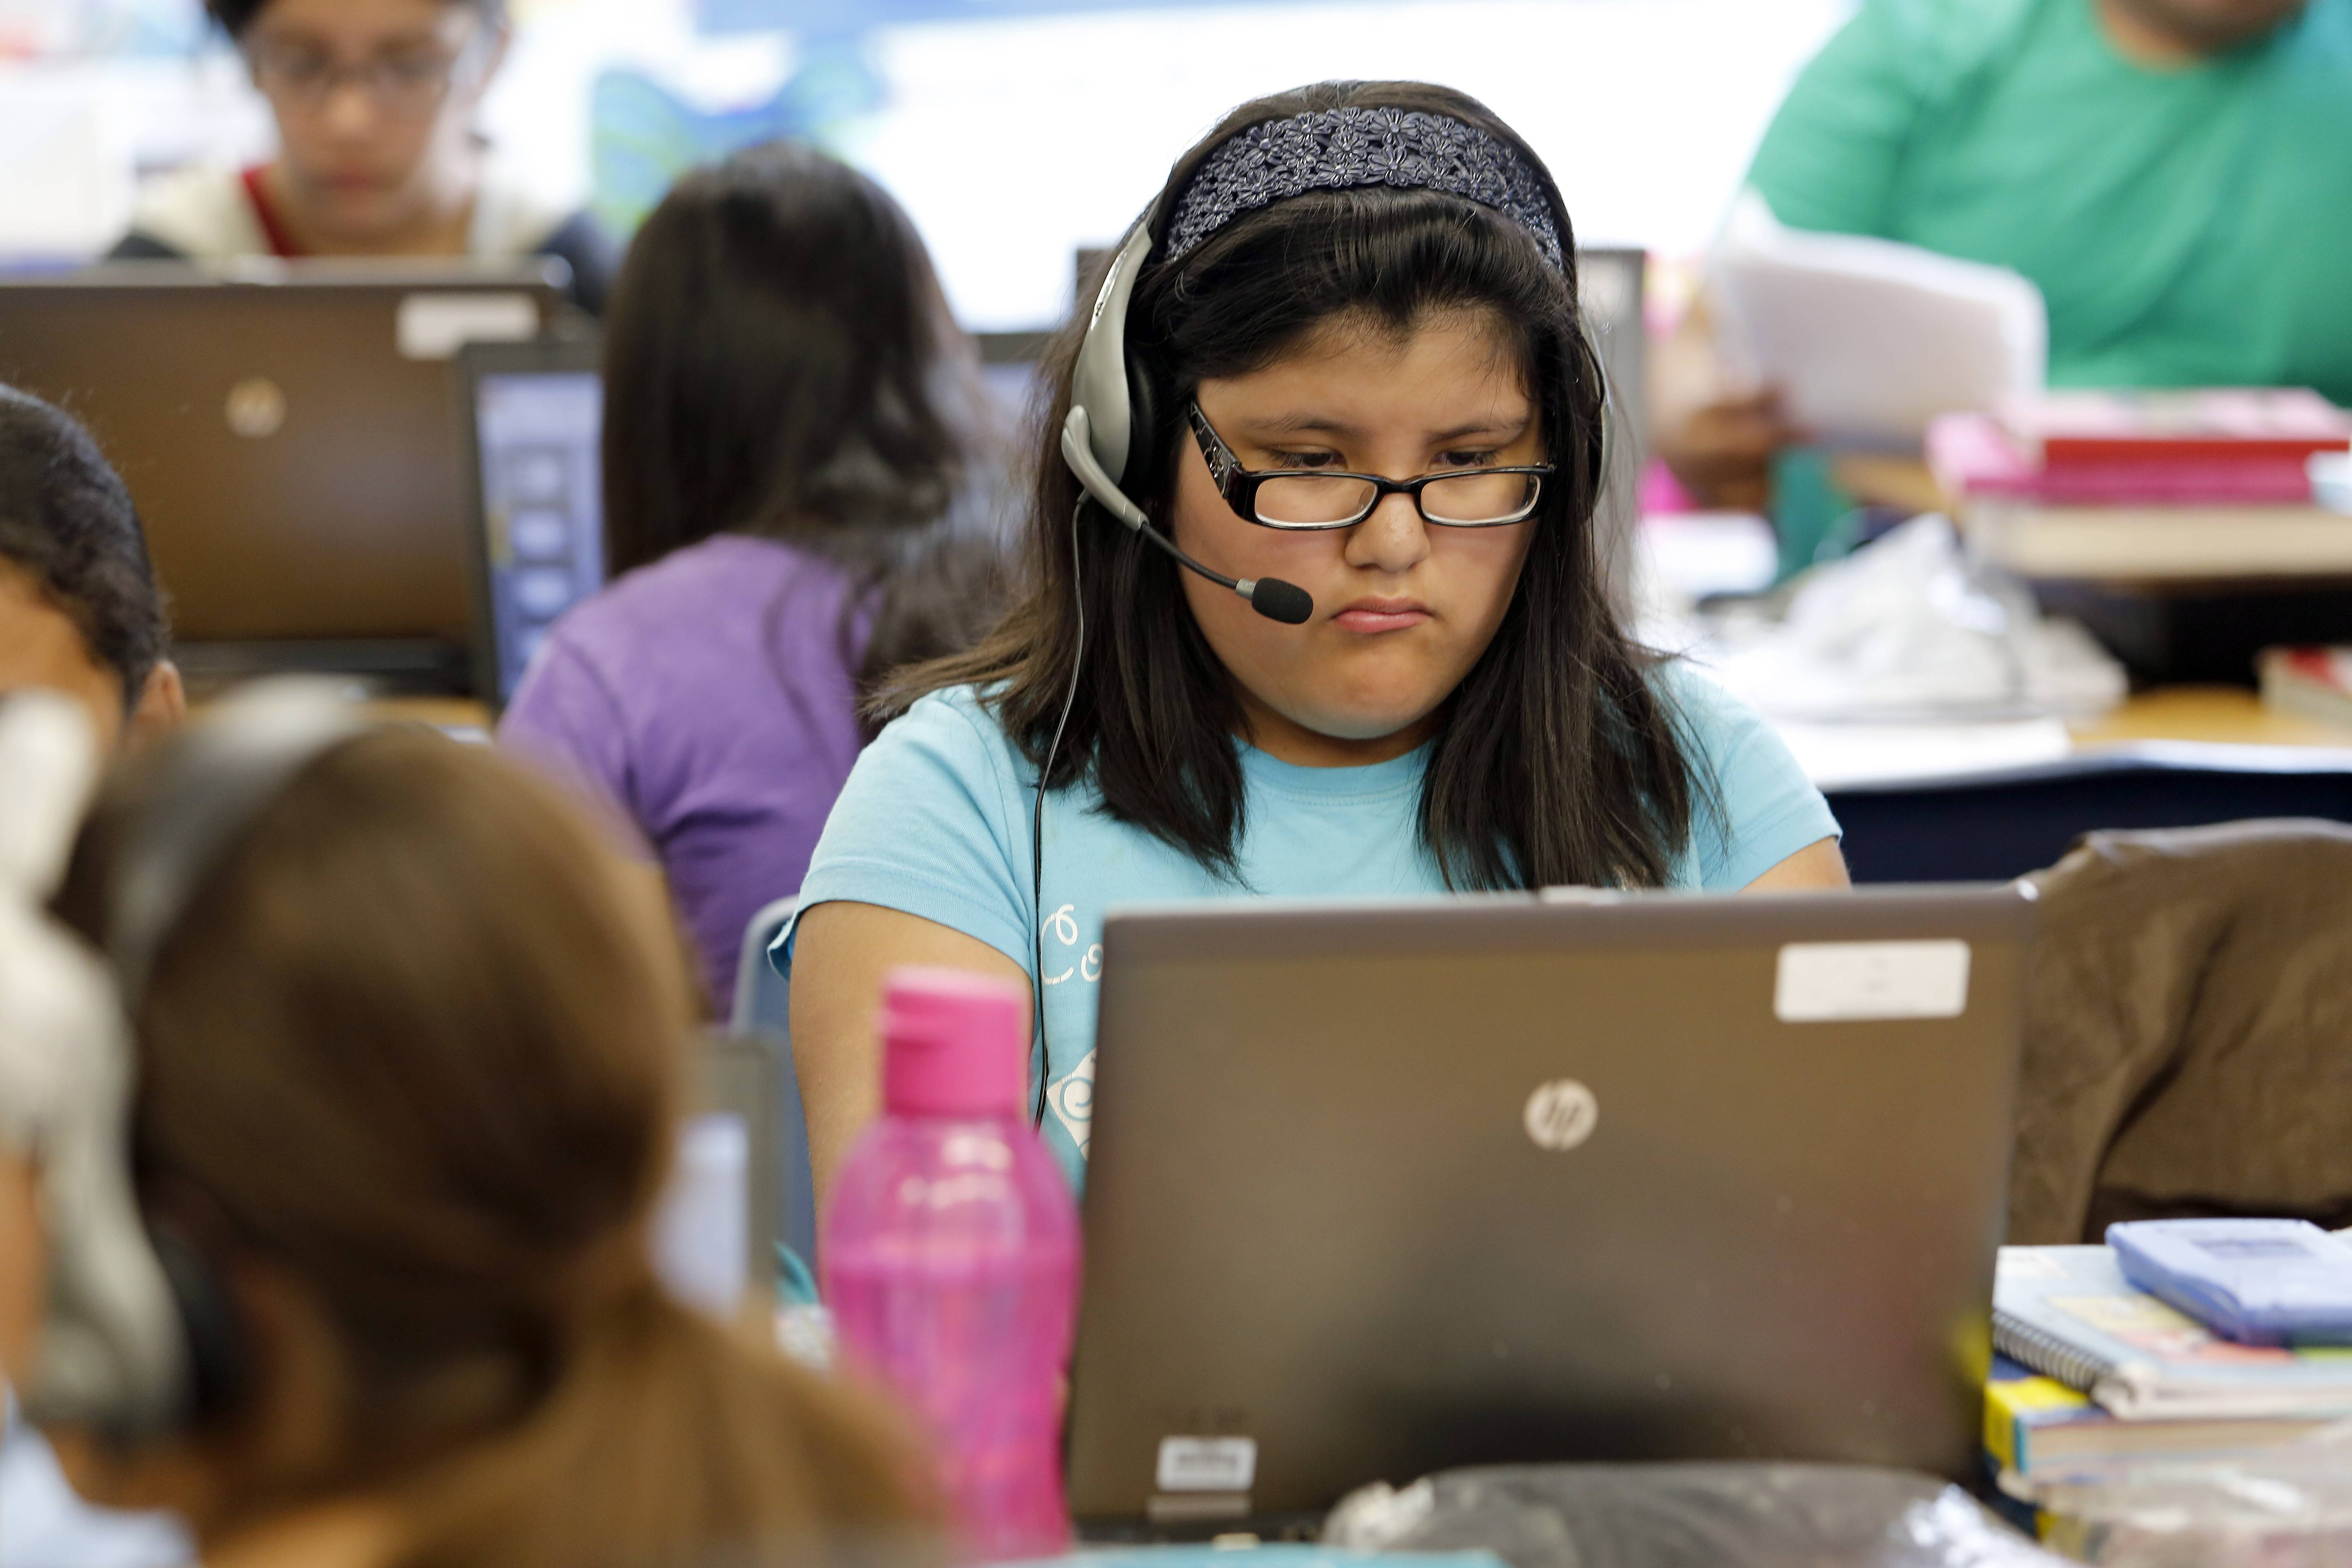 Jacqlina Perez, 11, a fifth-grader at Hillcrest Elementary School in Elgin, is one of 34 students in her general education class. According to a report this month from the Elgin Area School District U-46 Citizens' Advisory Committee, Hillcrest is one of two schools in the district over capacity.